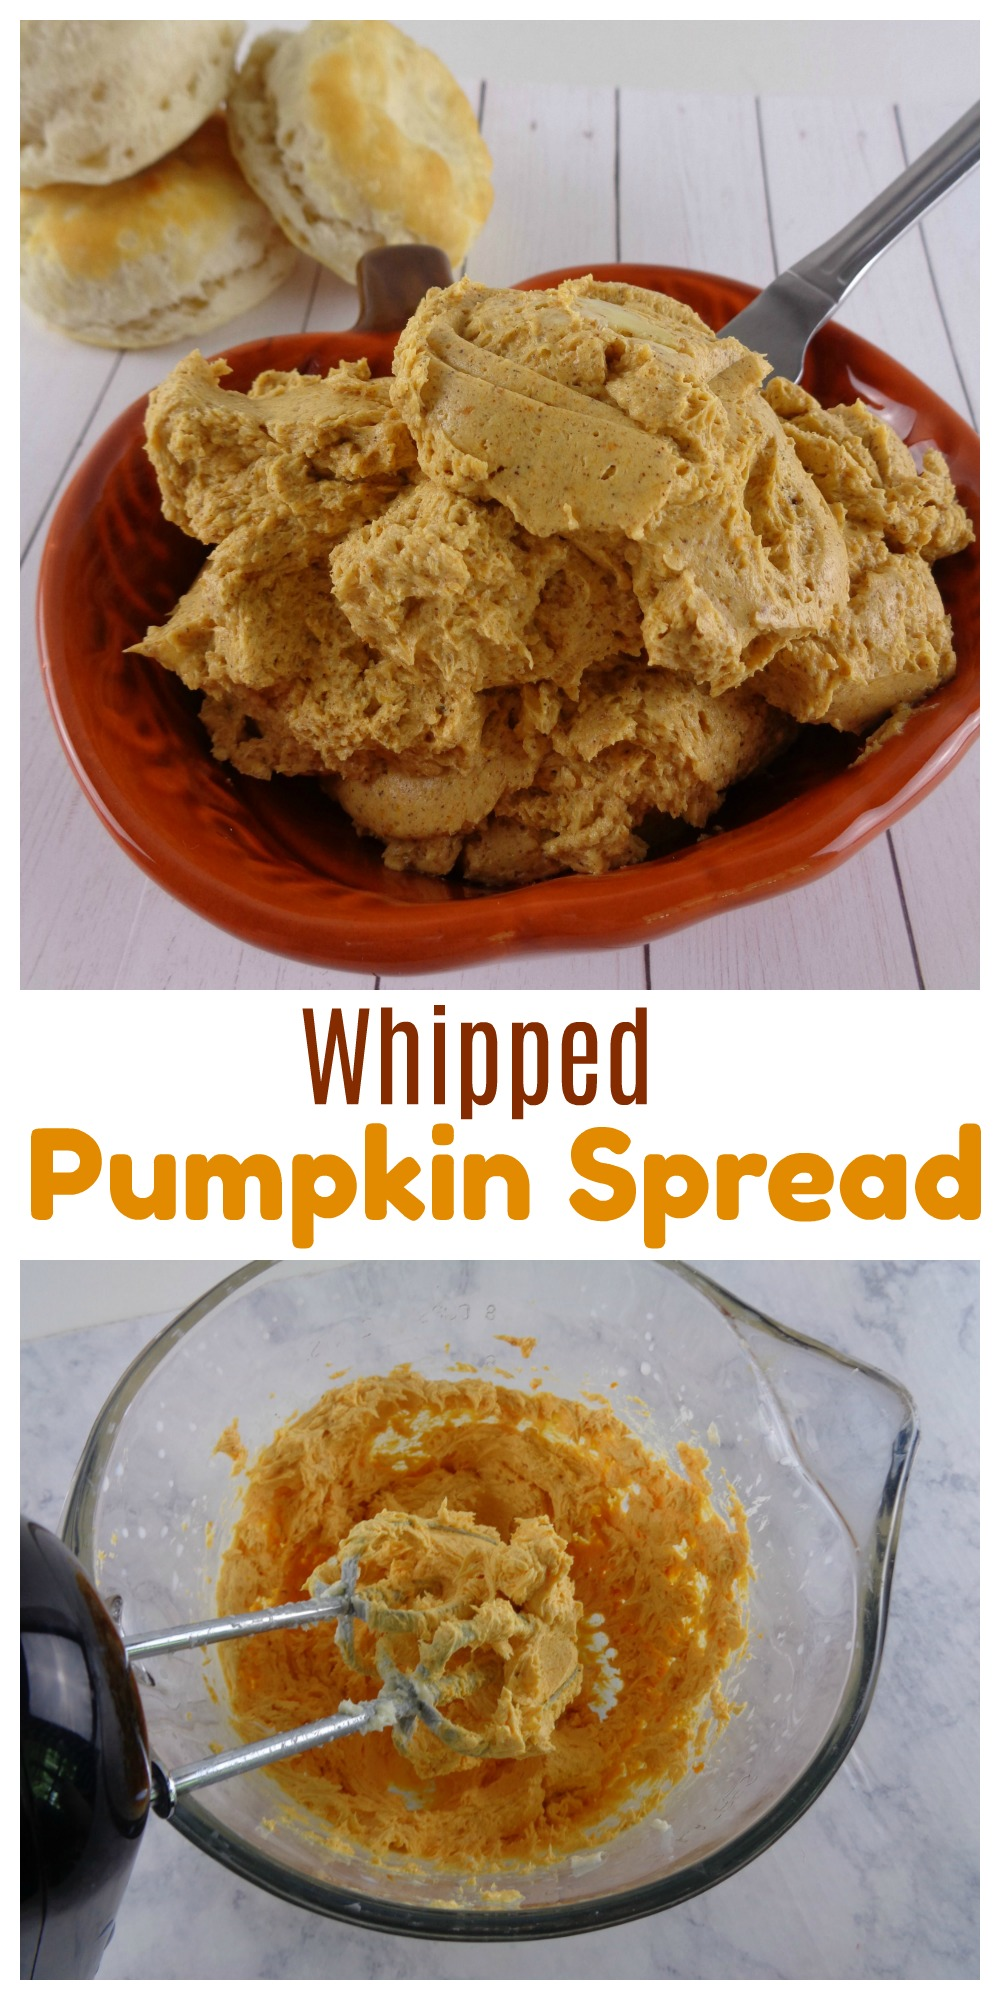 If you're in the mood for a quick pumpkin recipe, try some of this Whipped Pumpkin Spread. It's easy, really delicious and will satisfy your pumpkin craving